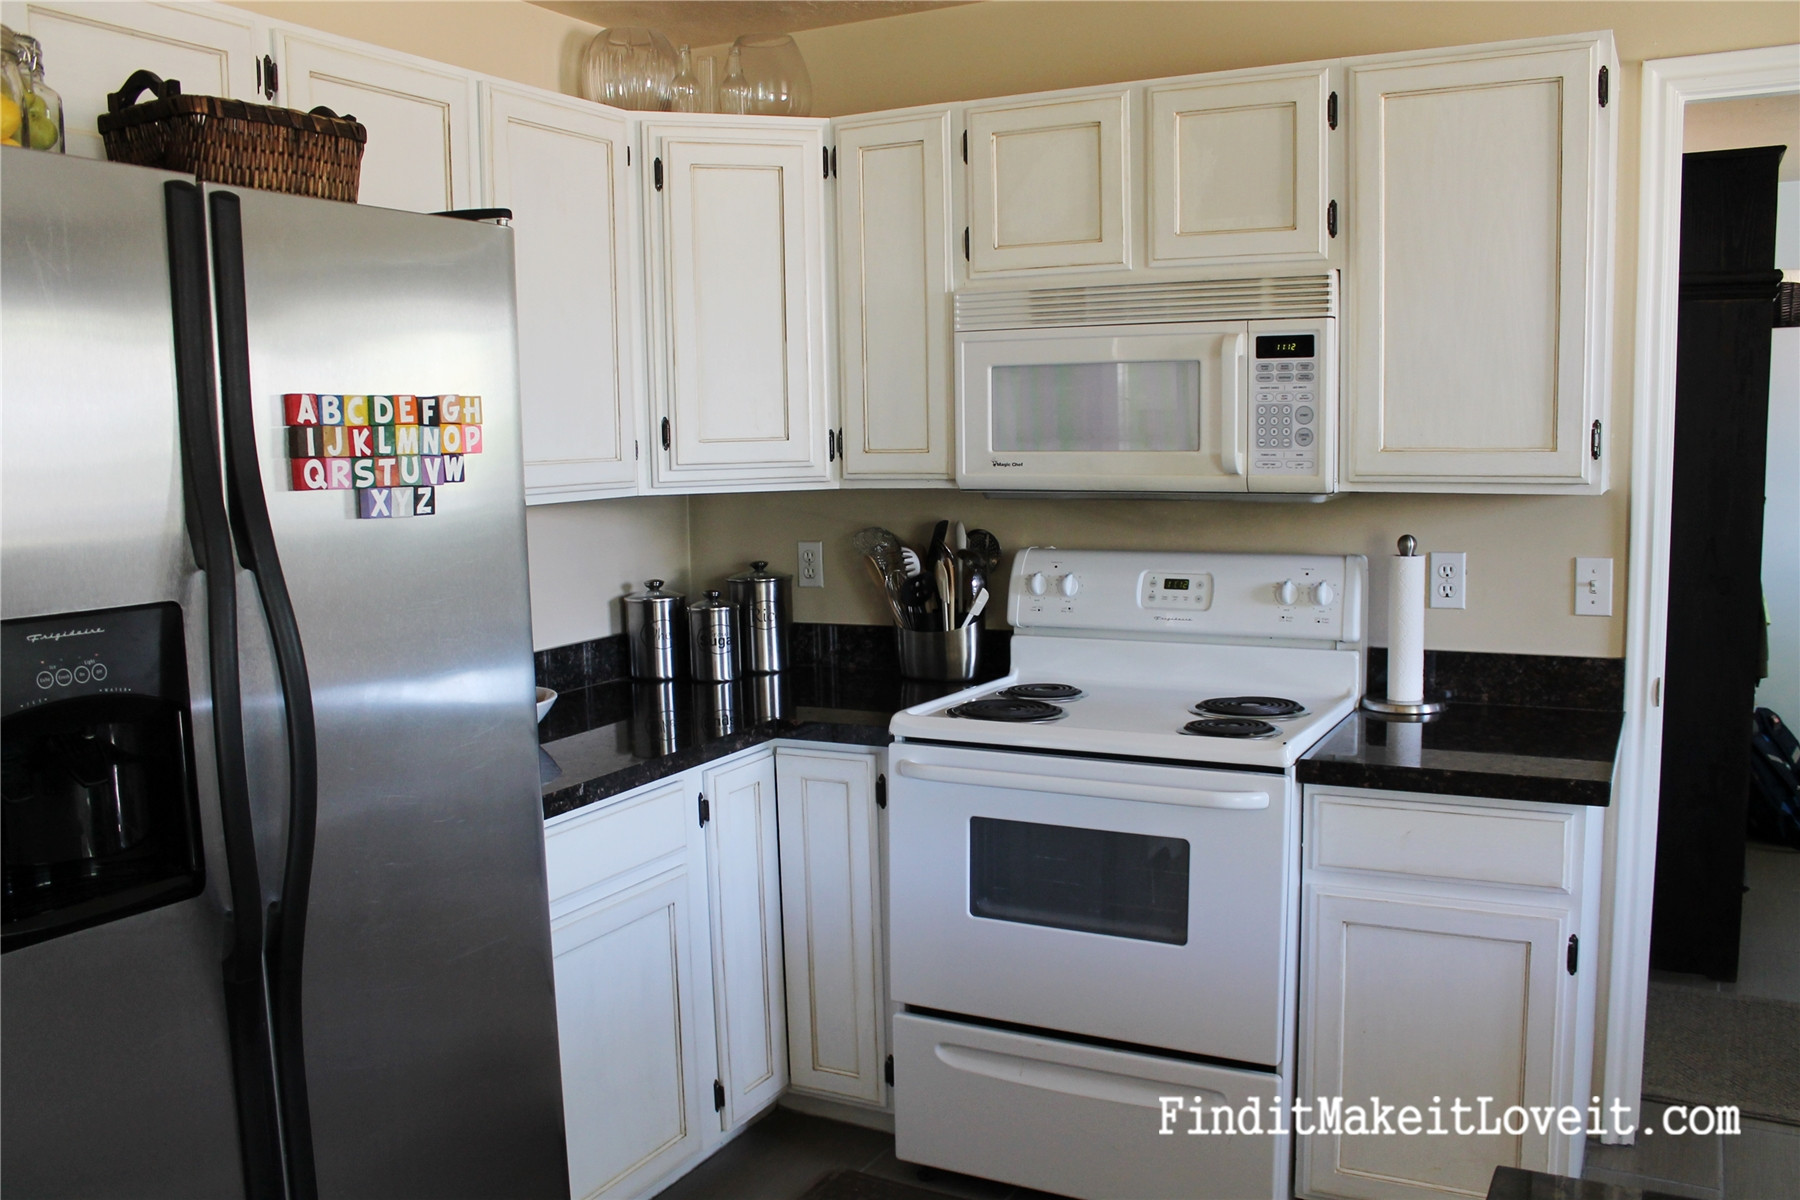 Best ideas about DIY Kitchen Cabinets Paint . Save or Pin $150 Kitchen Cabinet Makeover Find it Make it Love it Now.